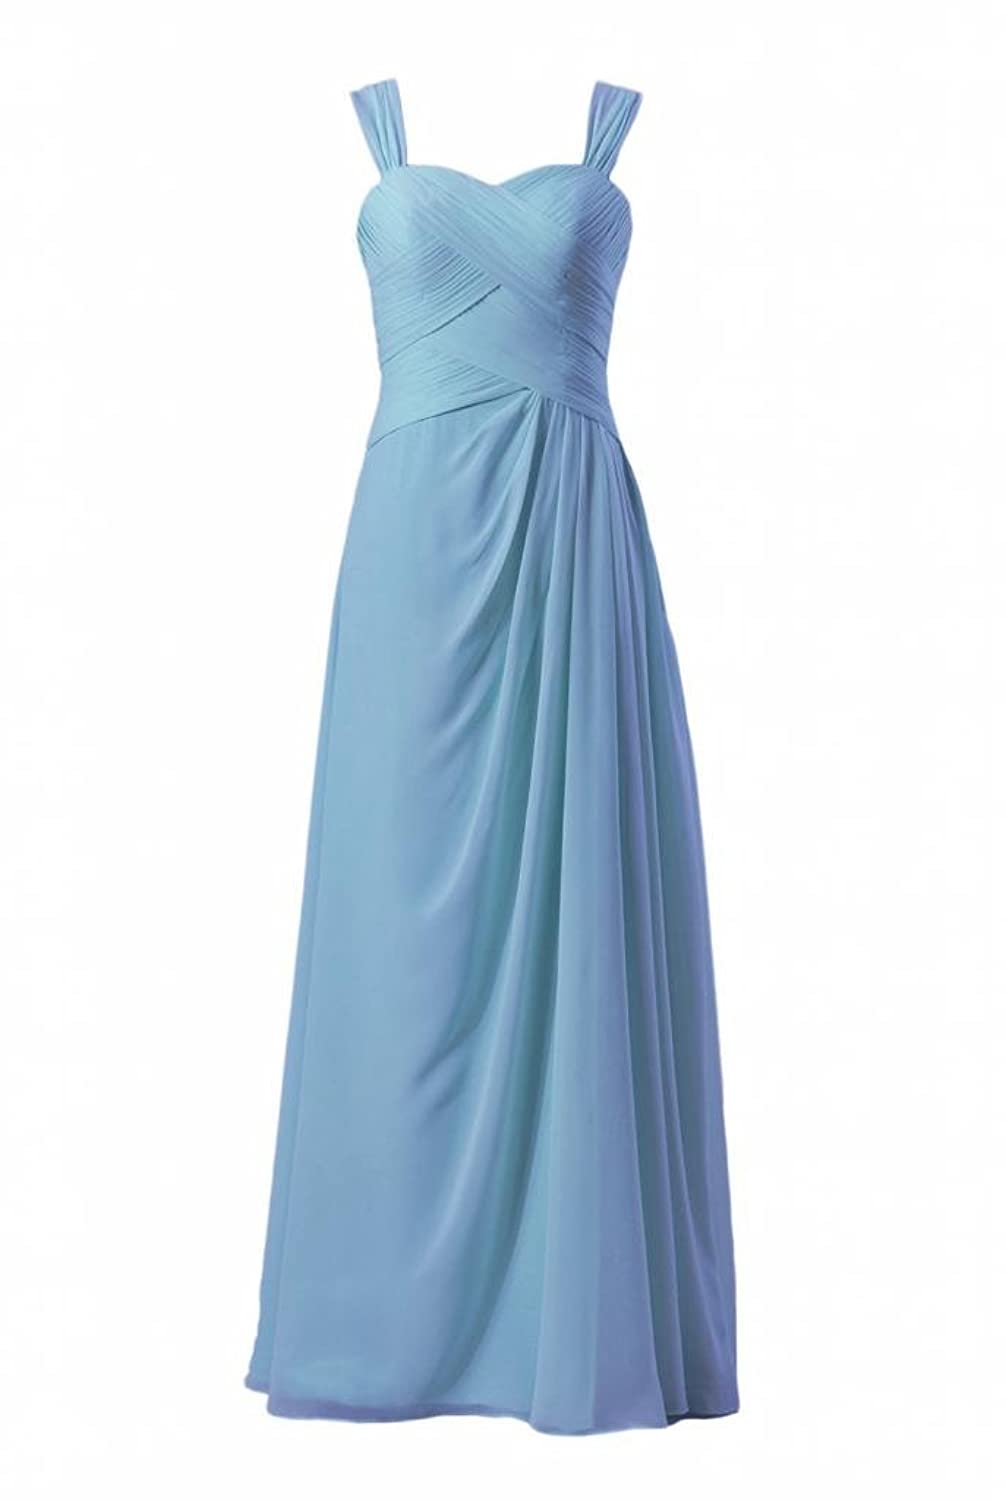 DaisyFormals Long Chiffon Evening Dress Elegant Formal Dress Bridal Party Dress w/Straps(BM732)